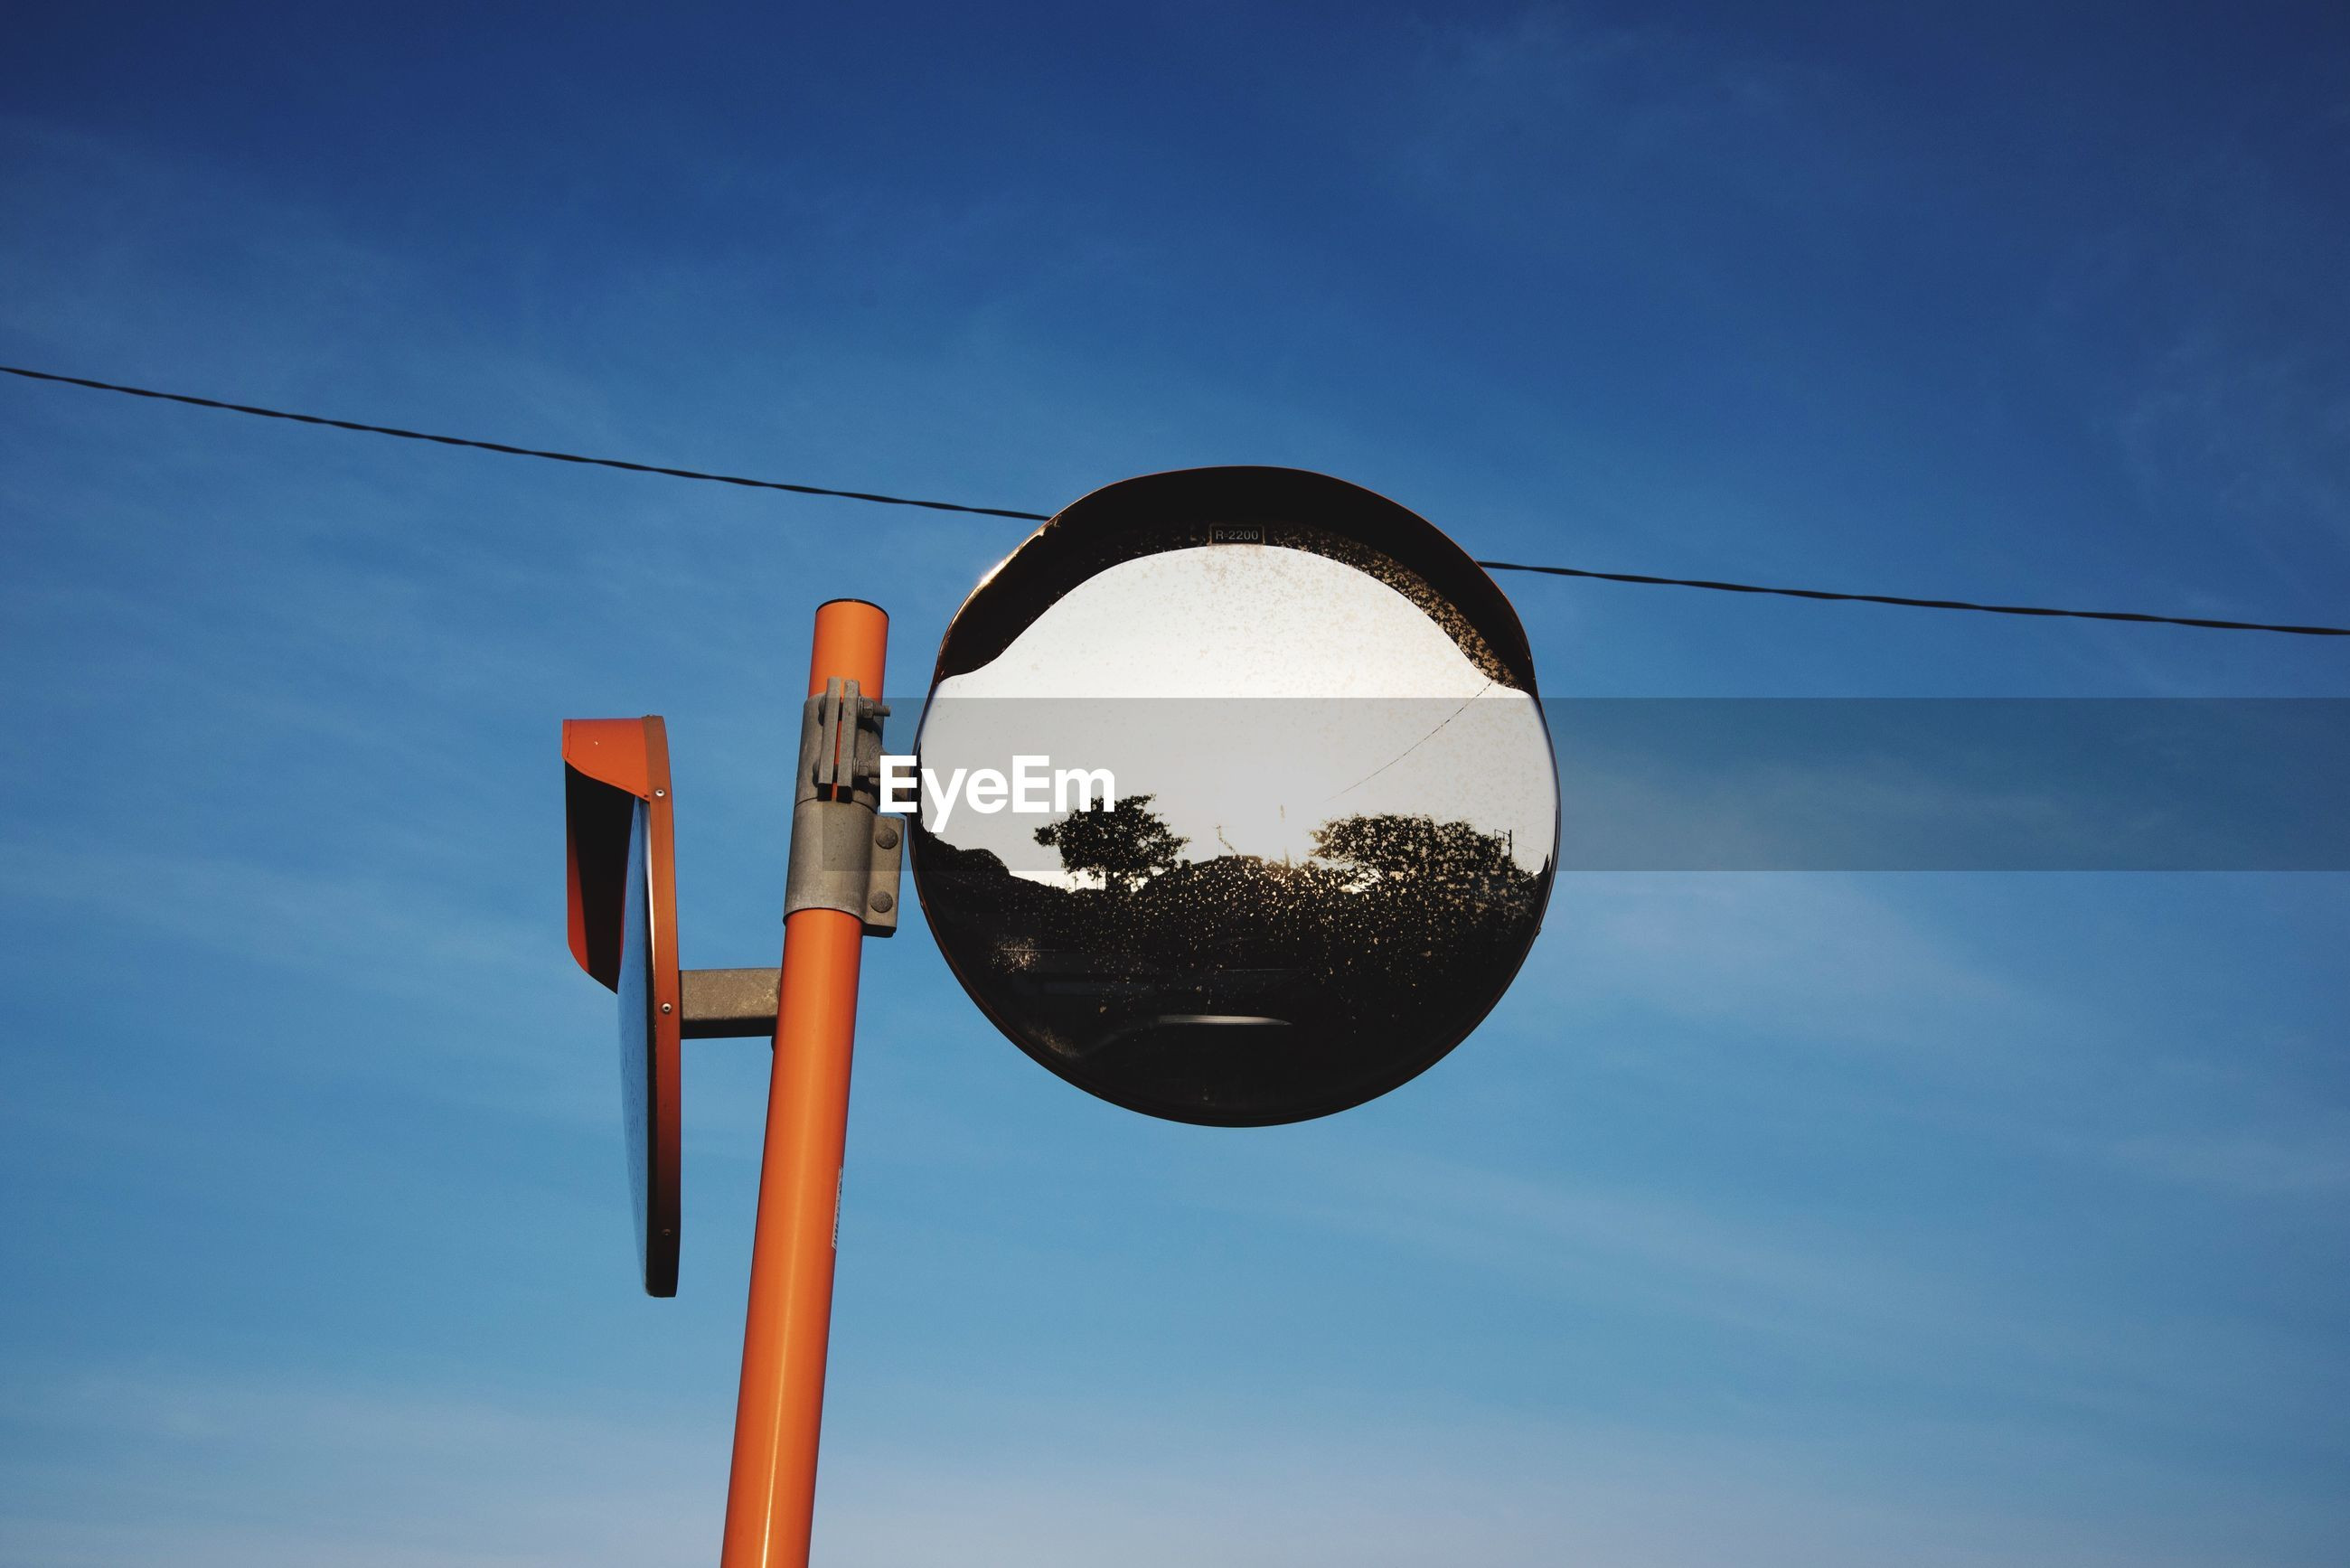 low angle view, sky, blue, hanging, street light, lighting equipment, cloud, tree, cloud - sky, pole, outdoors, no people, electricity, day, cable, silhouette, basketball hoop, clear sky, nature, circle